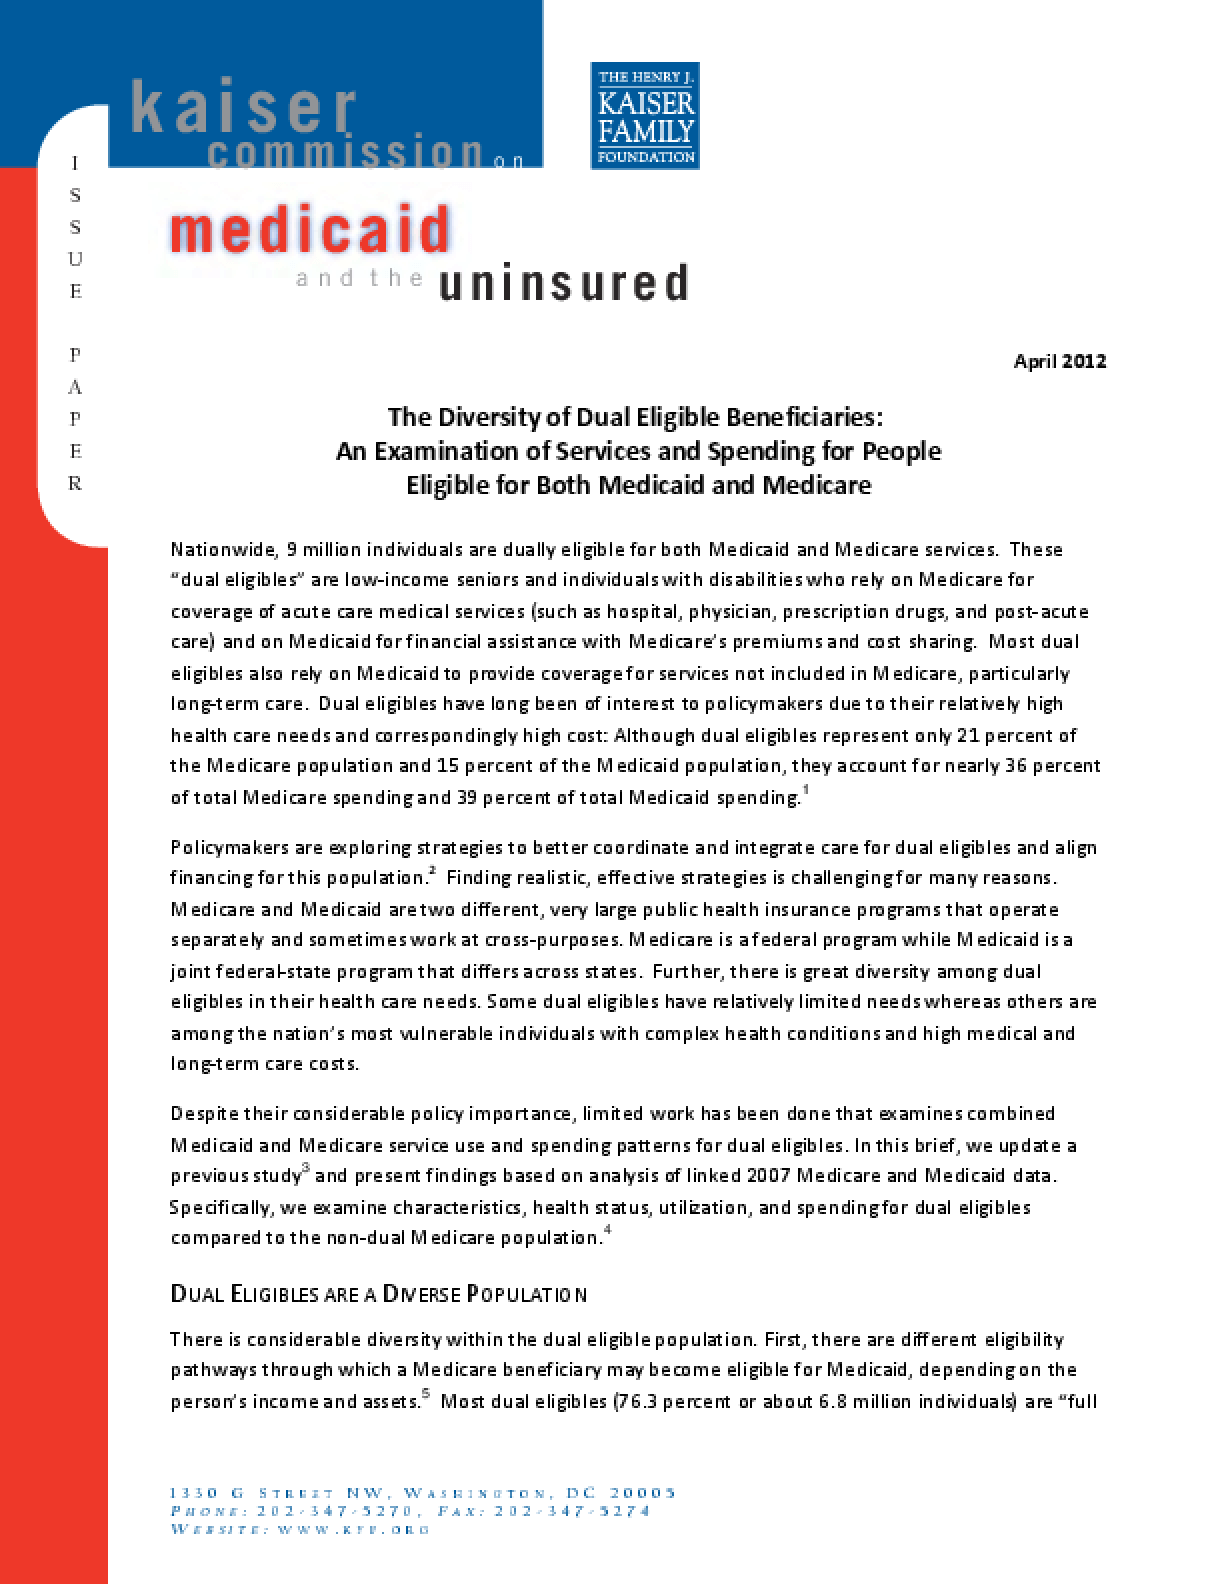 The Diversity of Dual Eligible Beneficiaries: An Examination of Services and Spending for People Eligible for Both Medicaid and Medicare